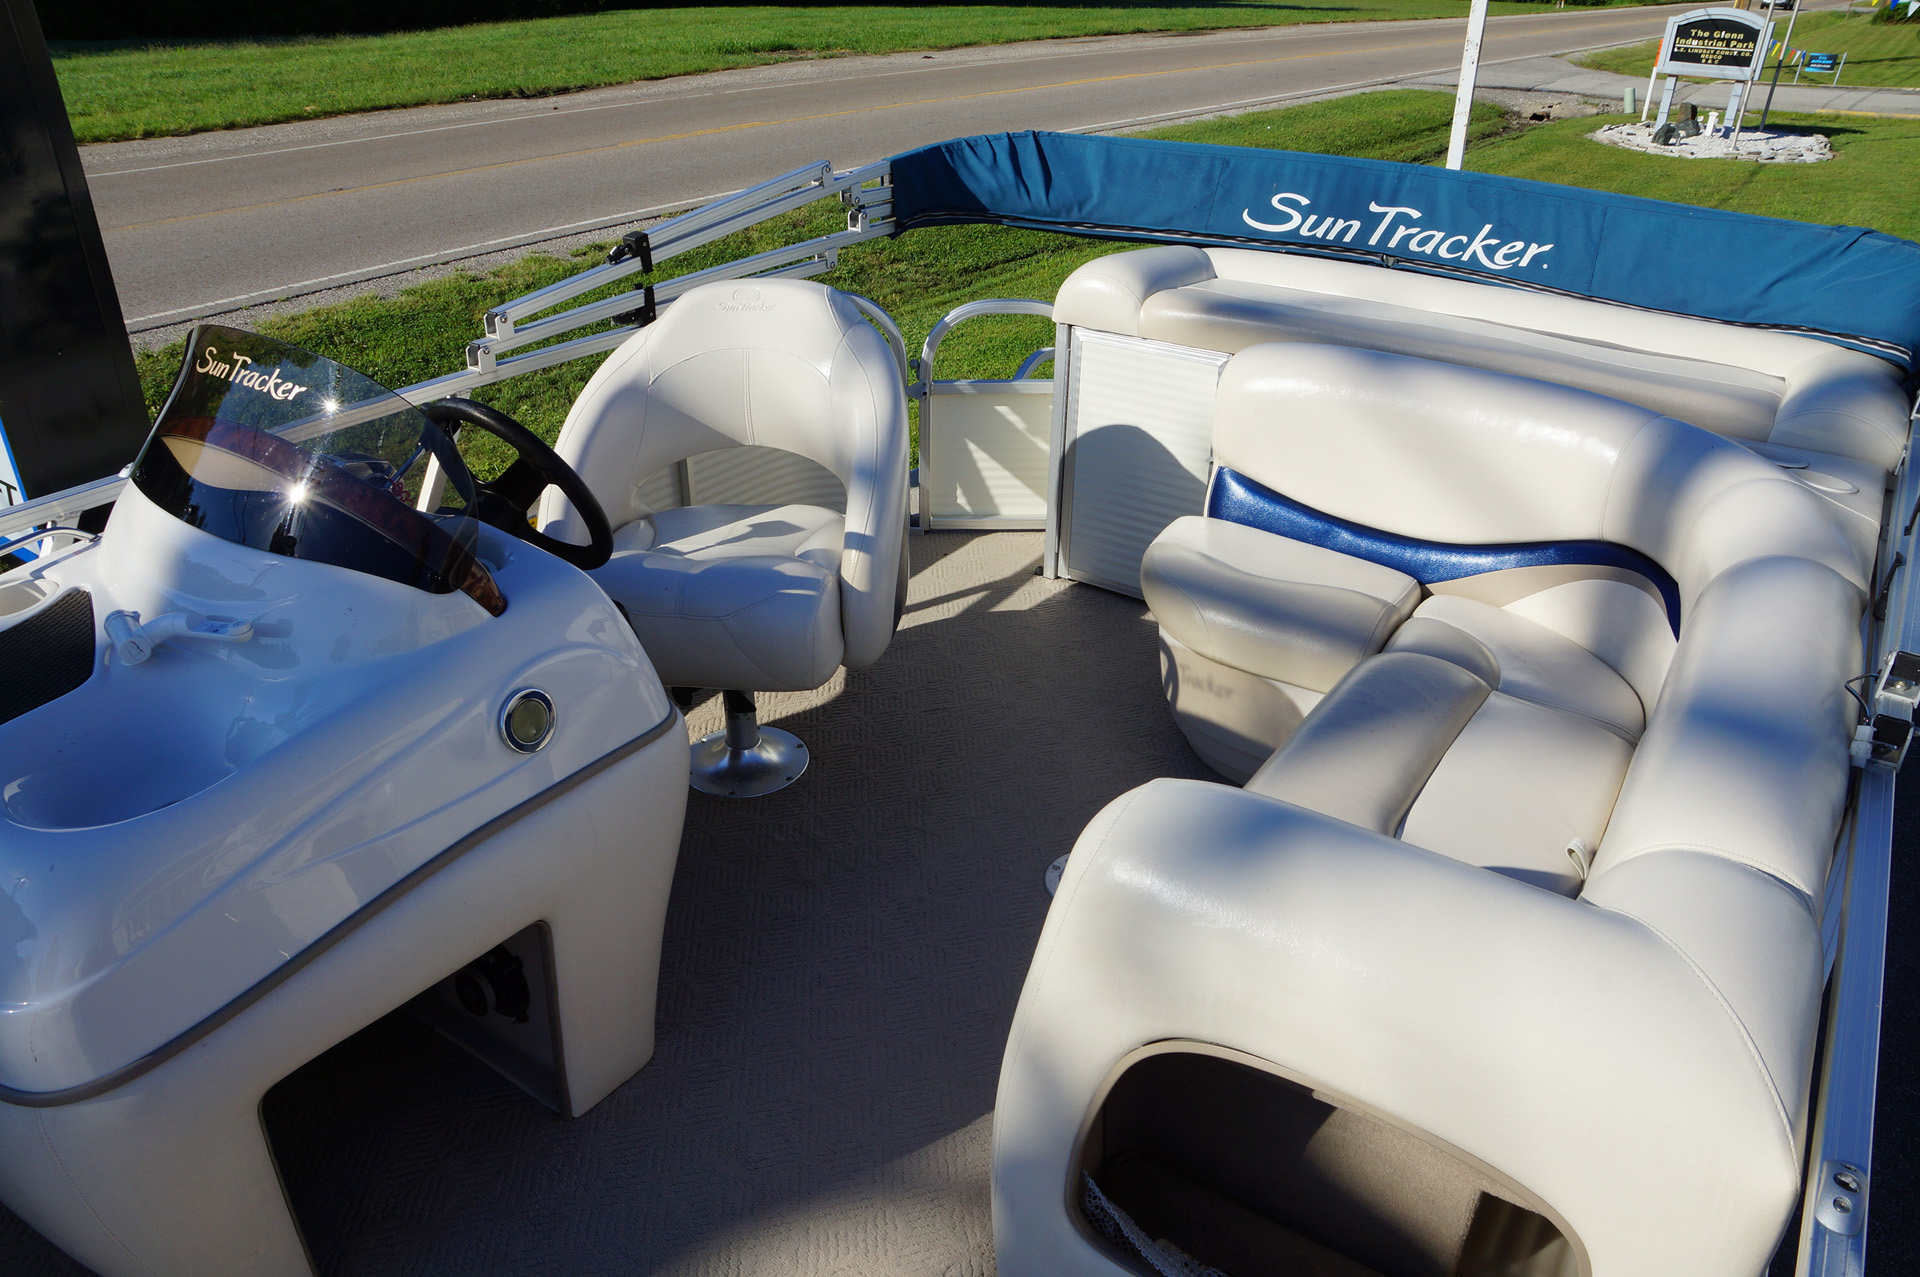 2010-tracker-party-barge-21-14